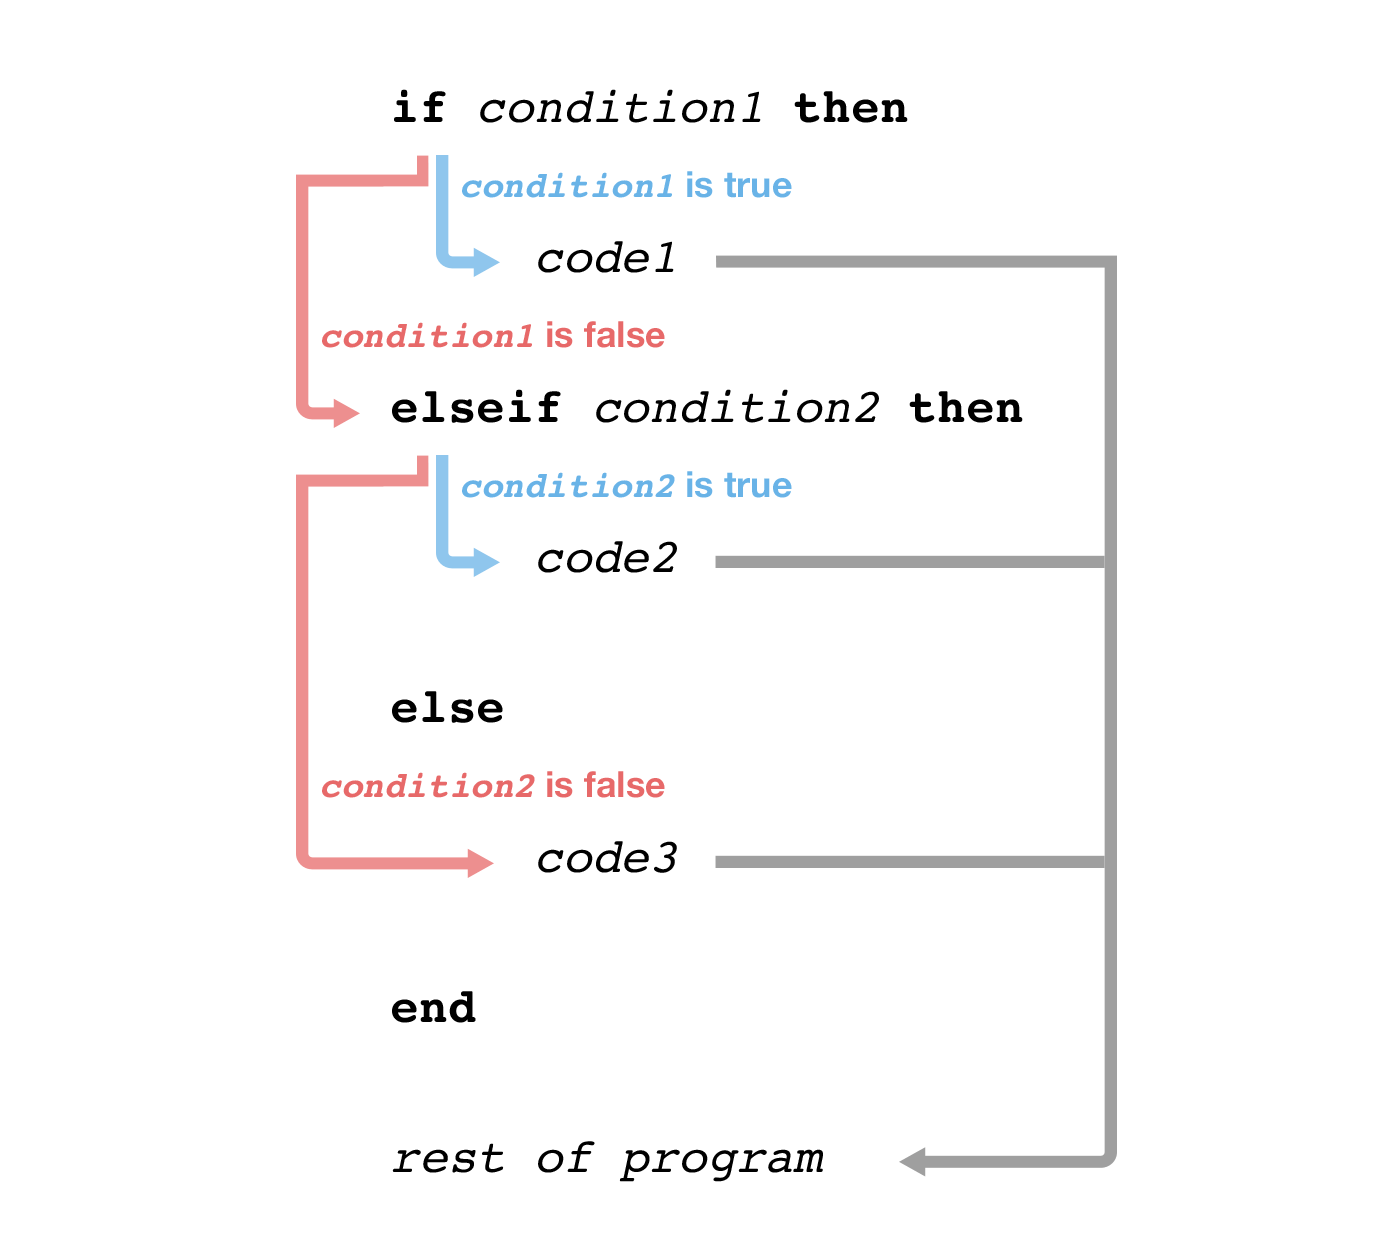 An if...elseif...else...end block. The values of condition1 and condition2 determine which chunk of code the computer runs.